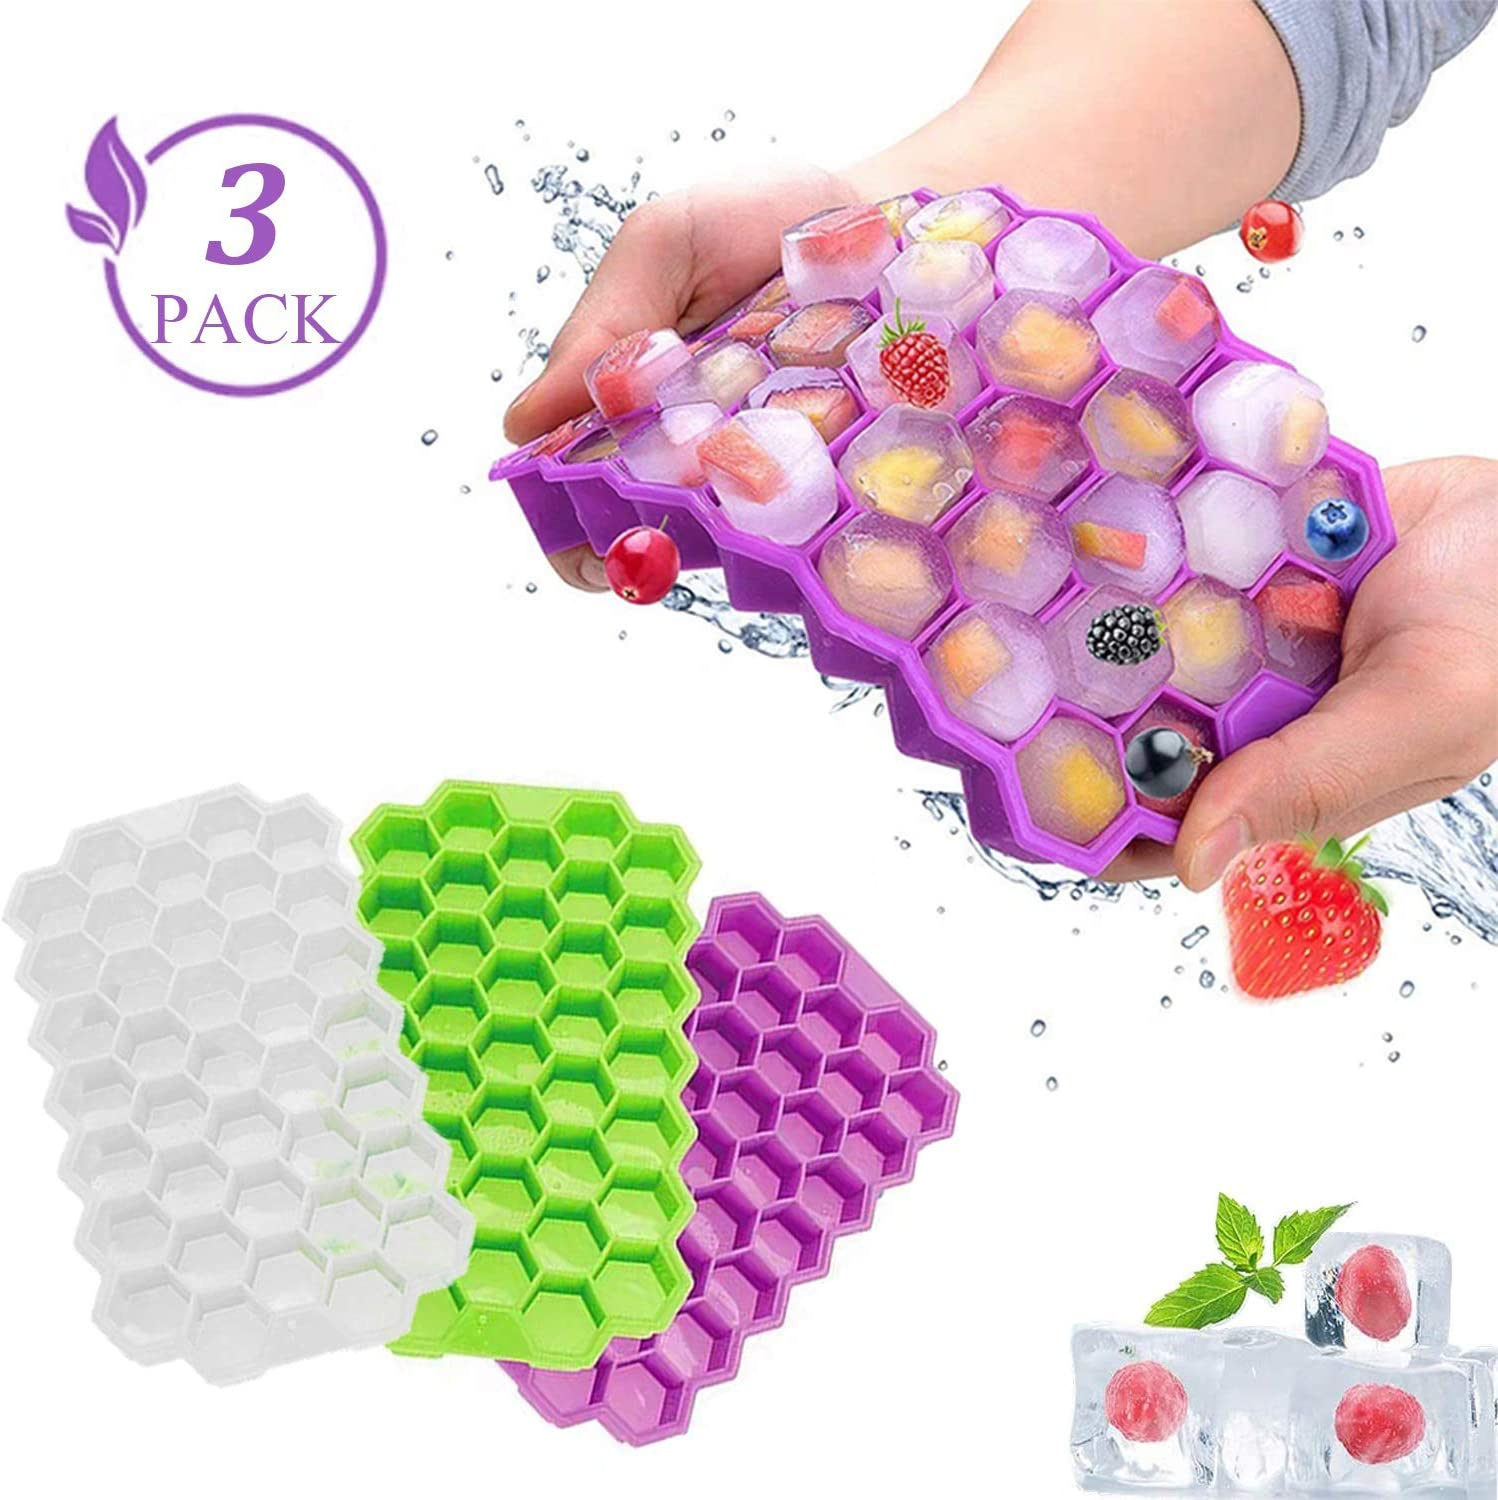 3 Pack Food Grade Silicone Flexible Ice Cube Molds with Lids,BPA Free,Durable Cube Trays,111 Cubes Reusable Ice Maker,Easy Release Ice Cube Mold,For Whiskey Wine Cocktail Beverages Juice Chilled Drink